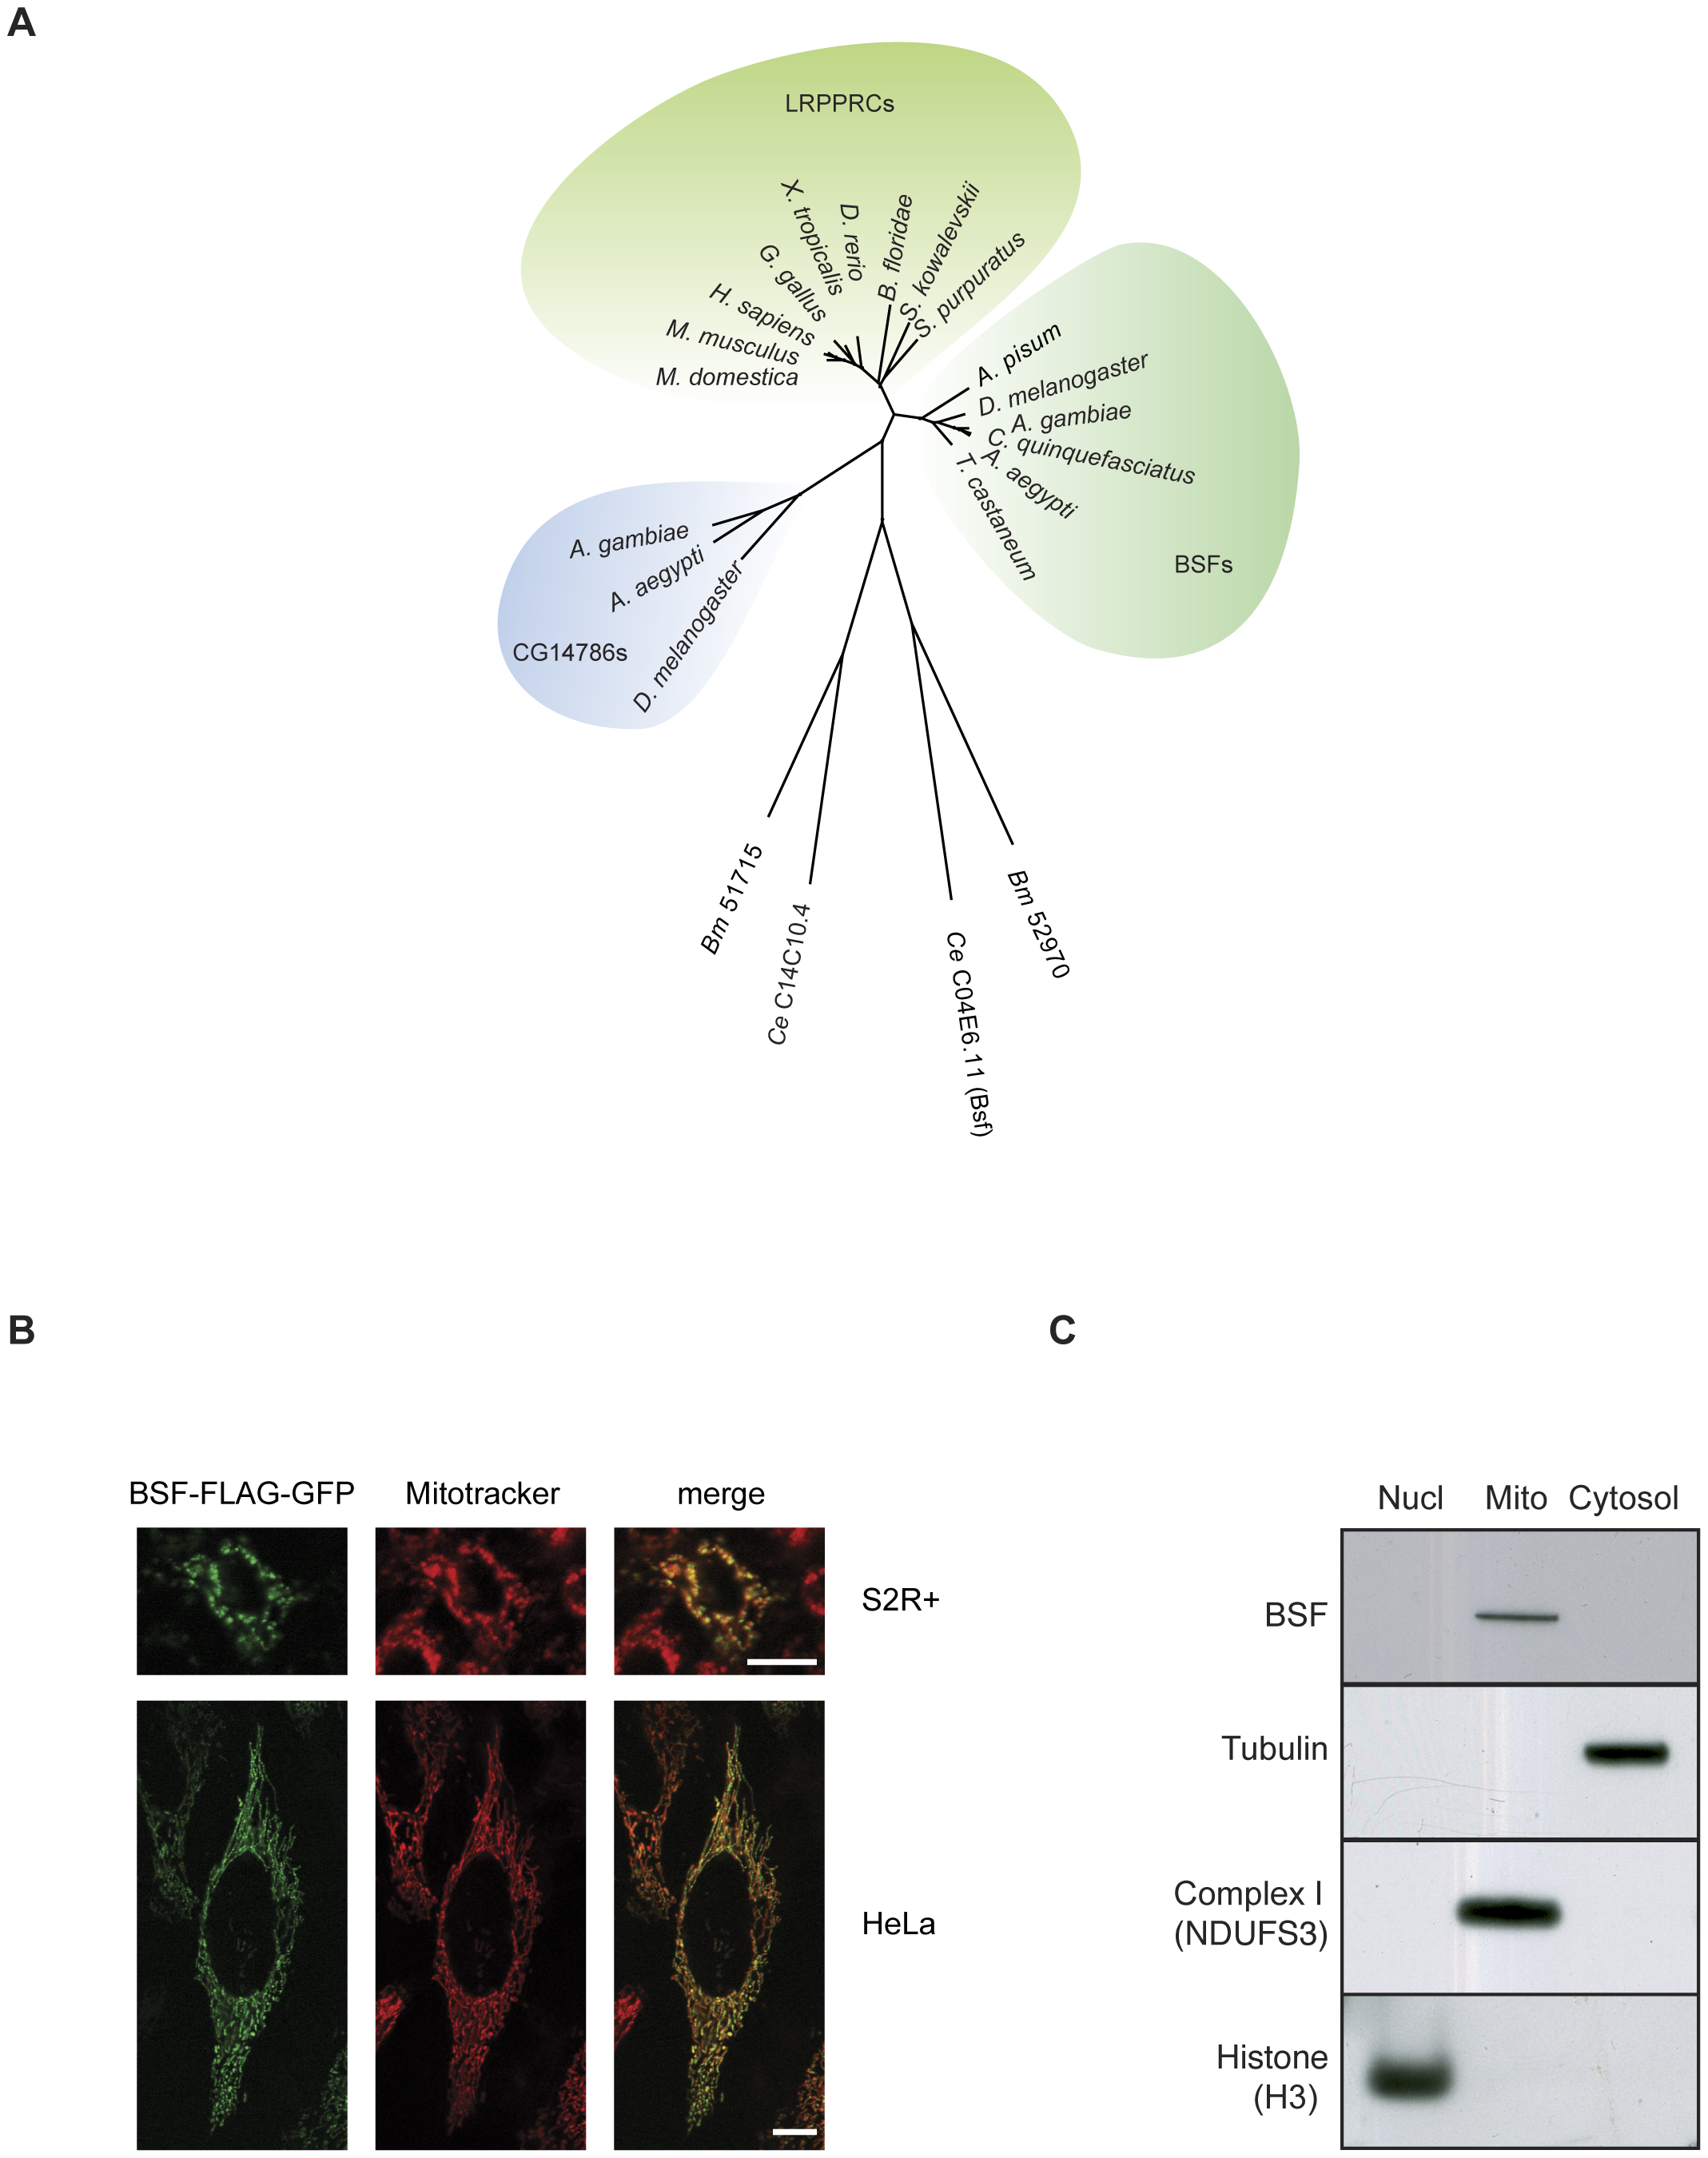 Phylogenetic analysis and subcellular localization of BSF.